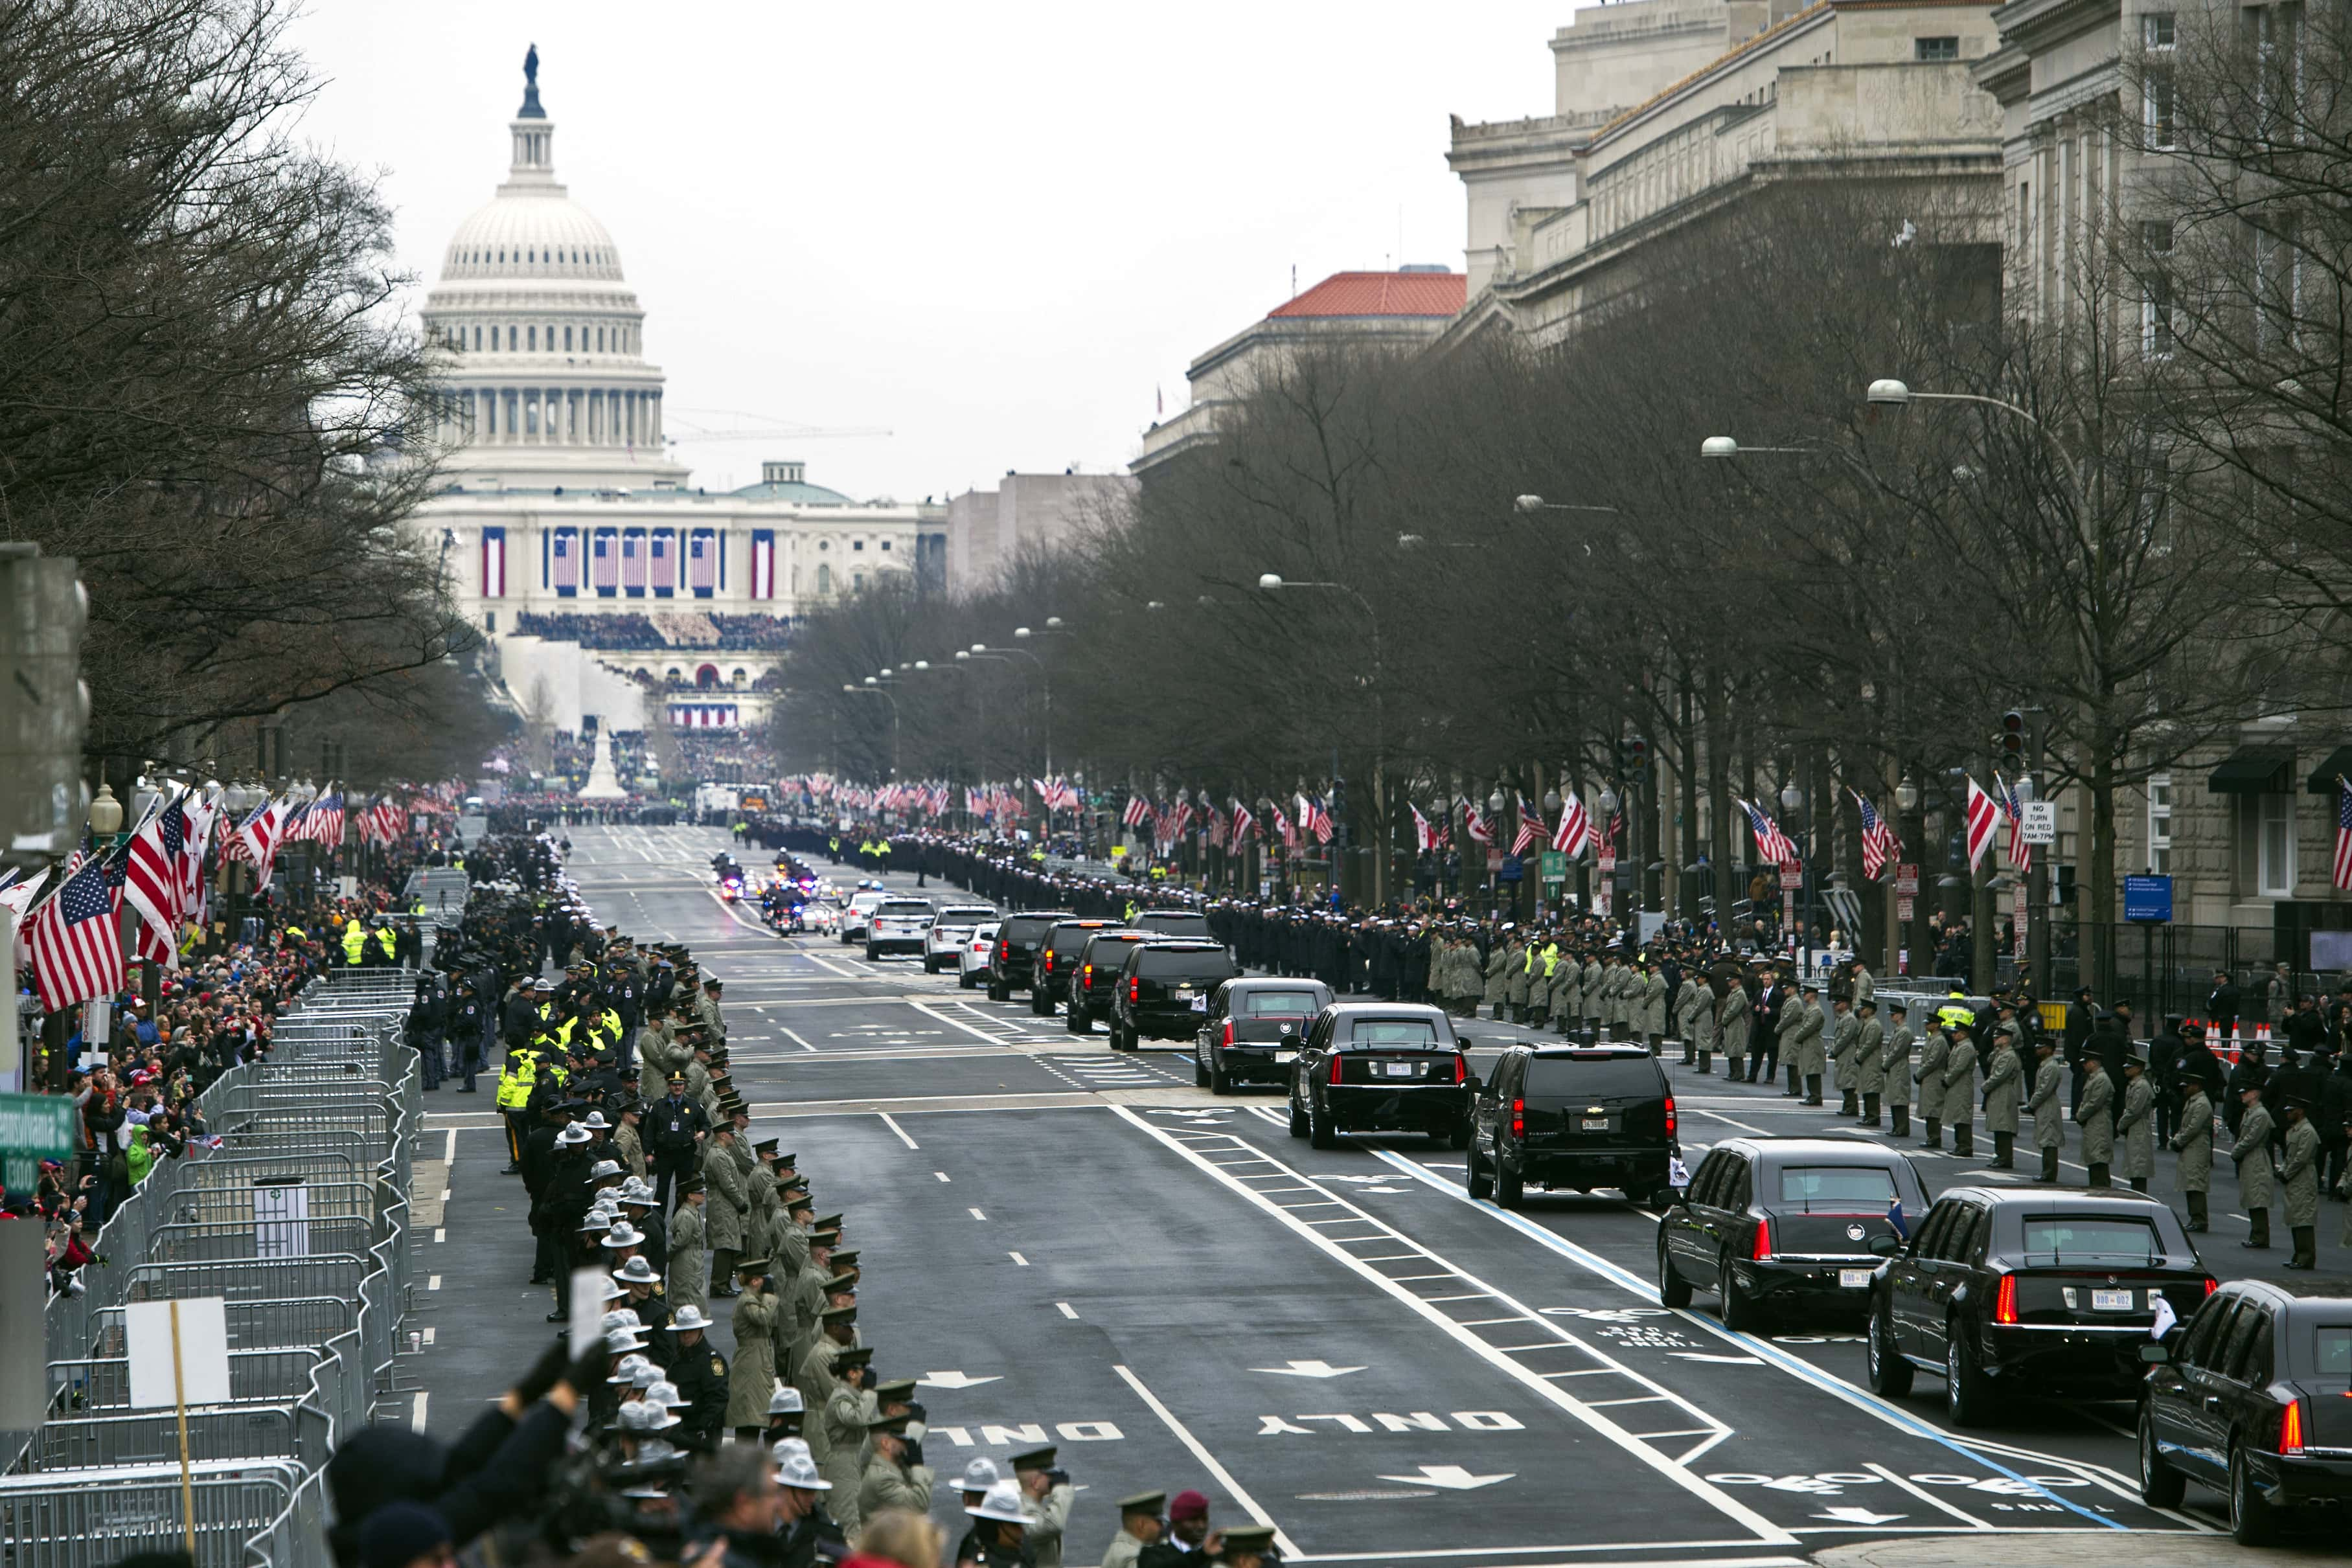 The Presidential motorcade drives on Pennsylvania Avenue to the Capitol for the Inauguration of President-elect Donald Trump, Friday, Jan. 20, 2017, in Washington. (AP Photo/Cliff Owen)